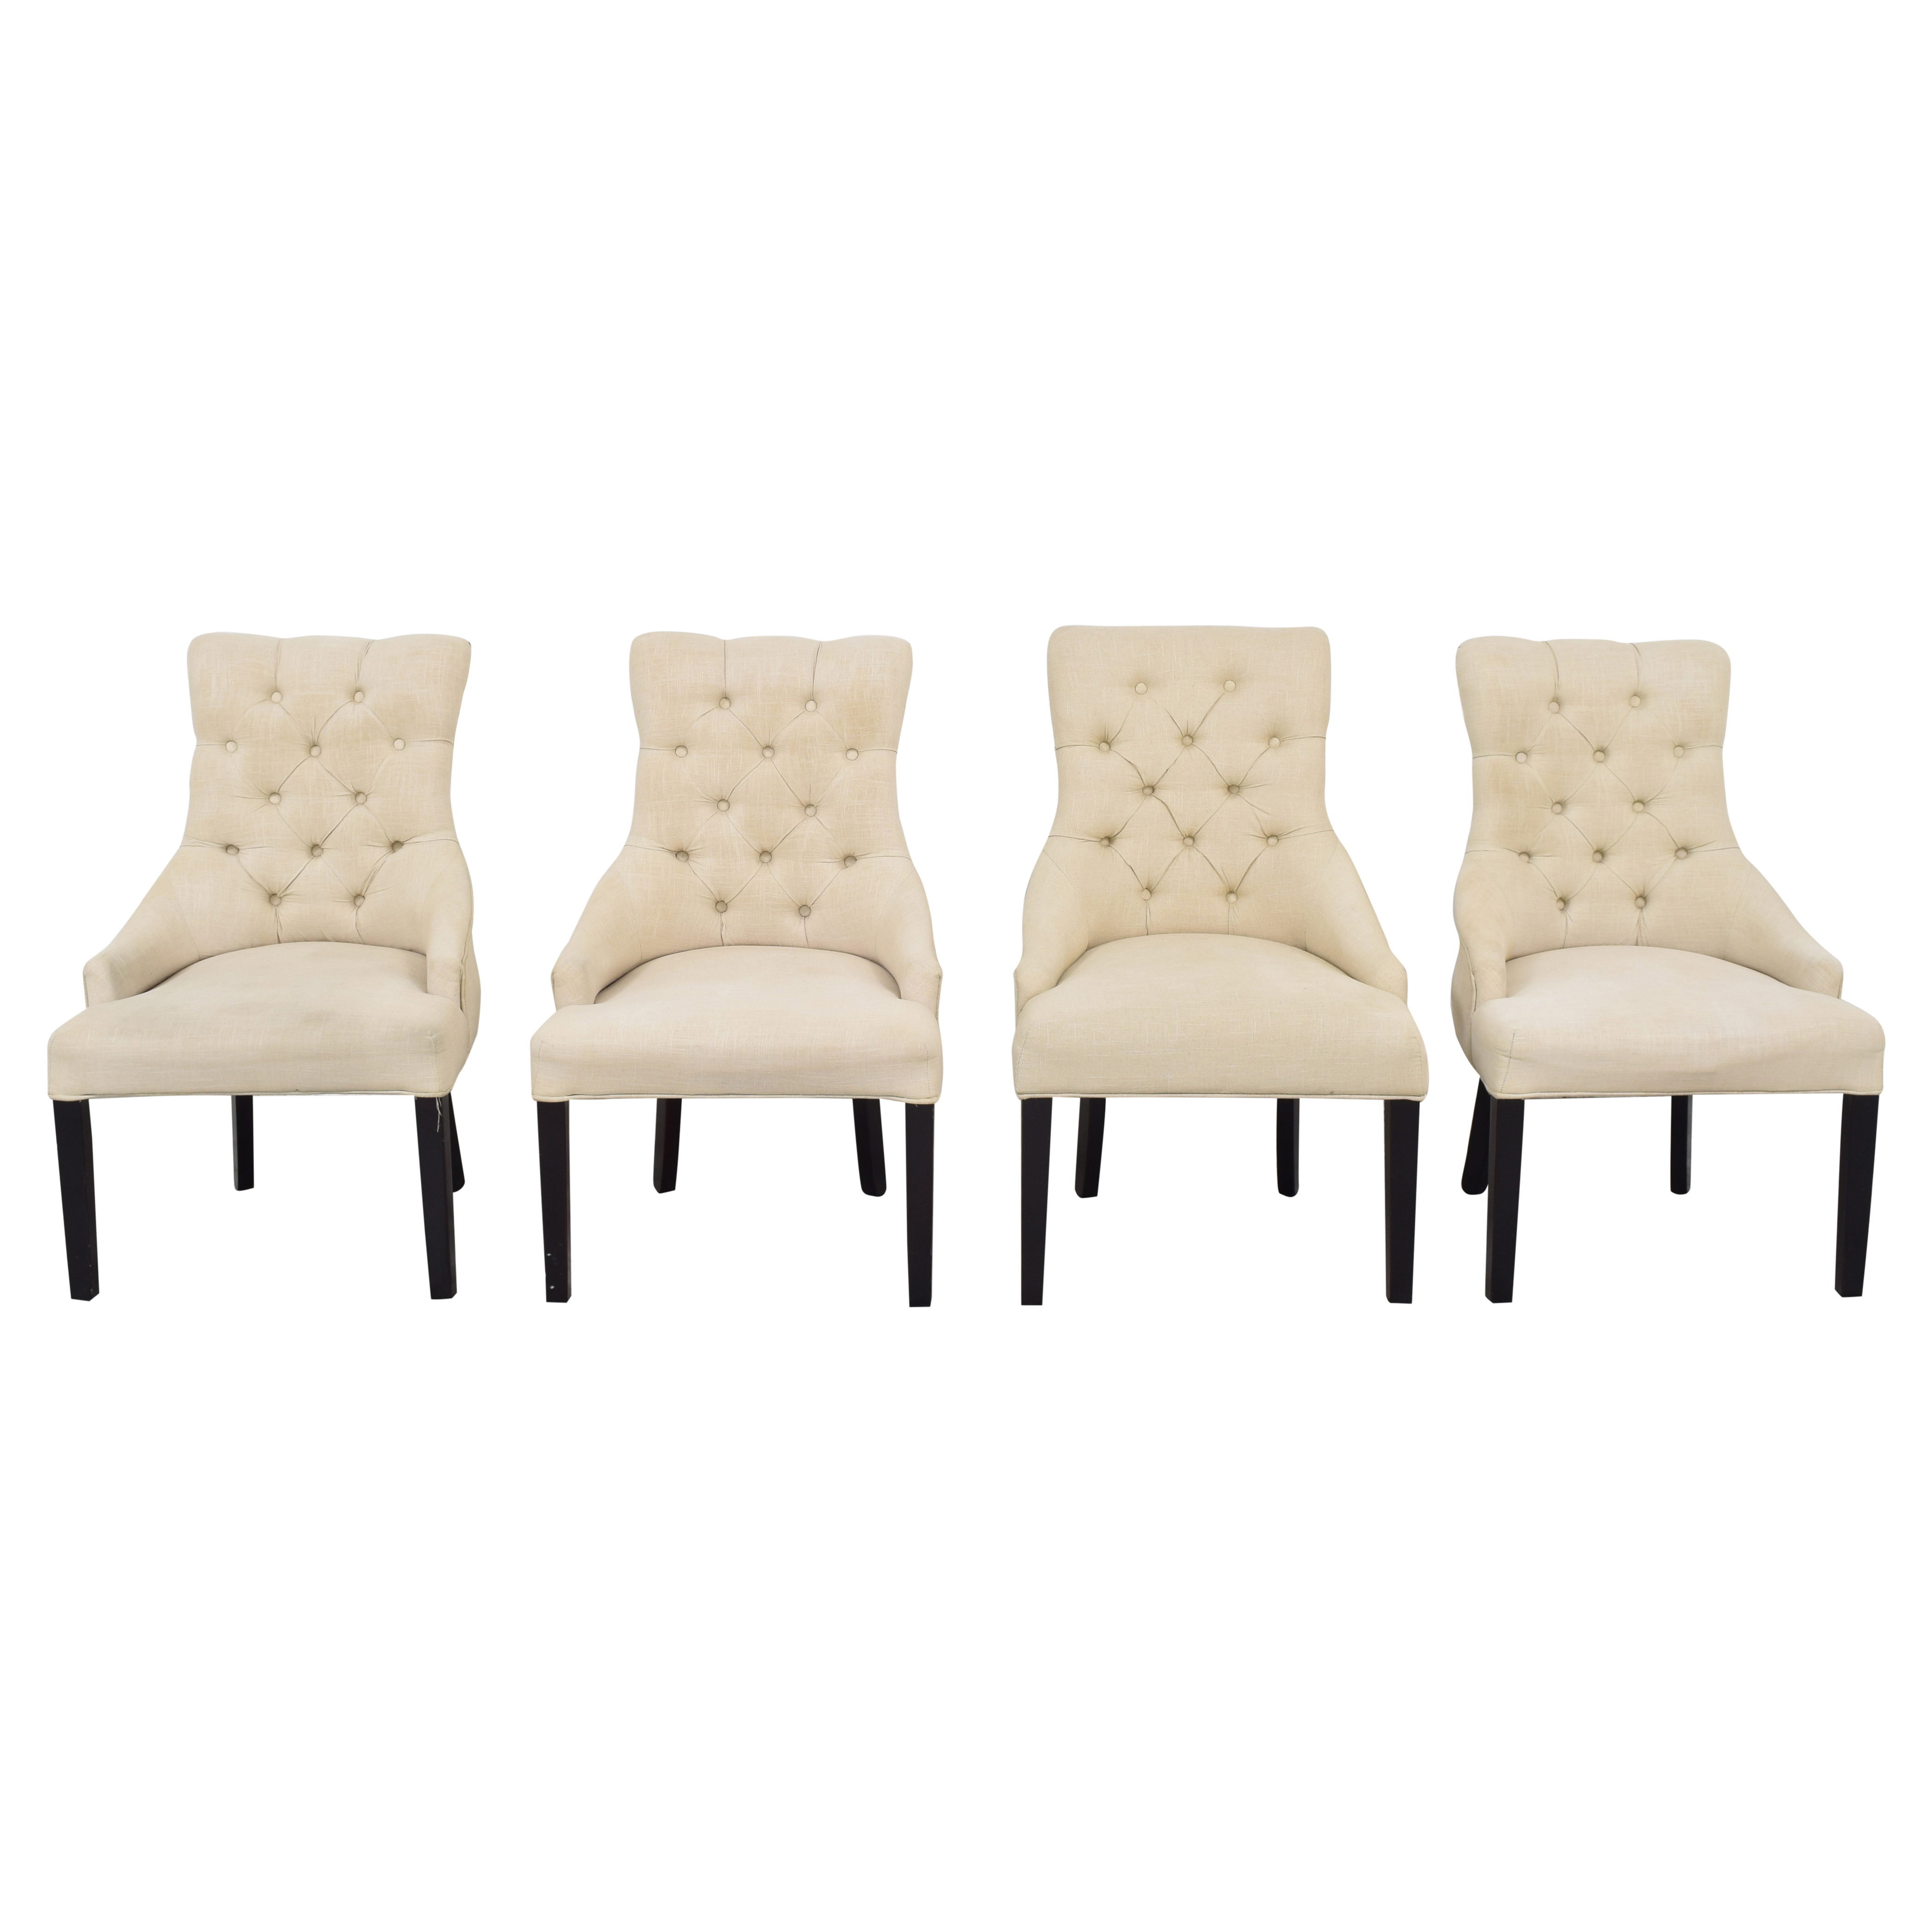 buy Macy's Marais Dining Parsons Chairs Macy's